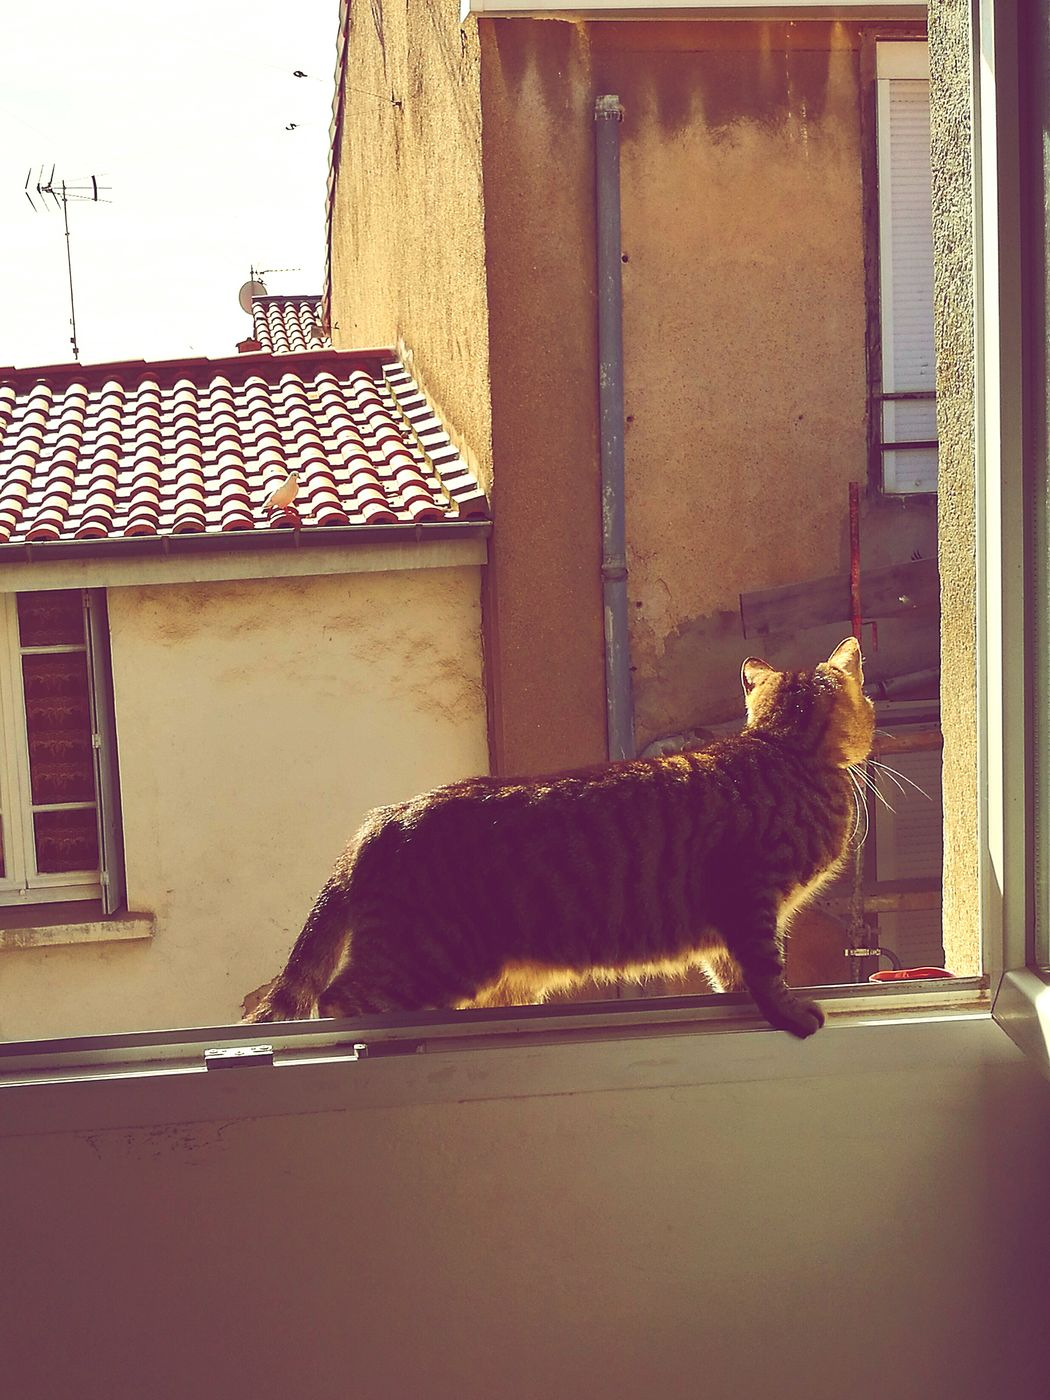 Cat Chat Chasse Animal Themes One Animal Domestic Cat Pets Window No People Domestic Animals Feline Tabby Cat Curieux Explorateur